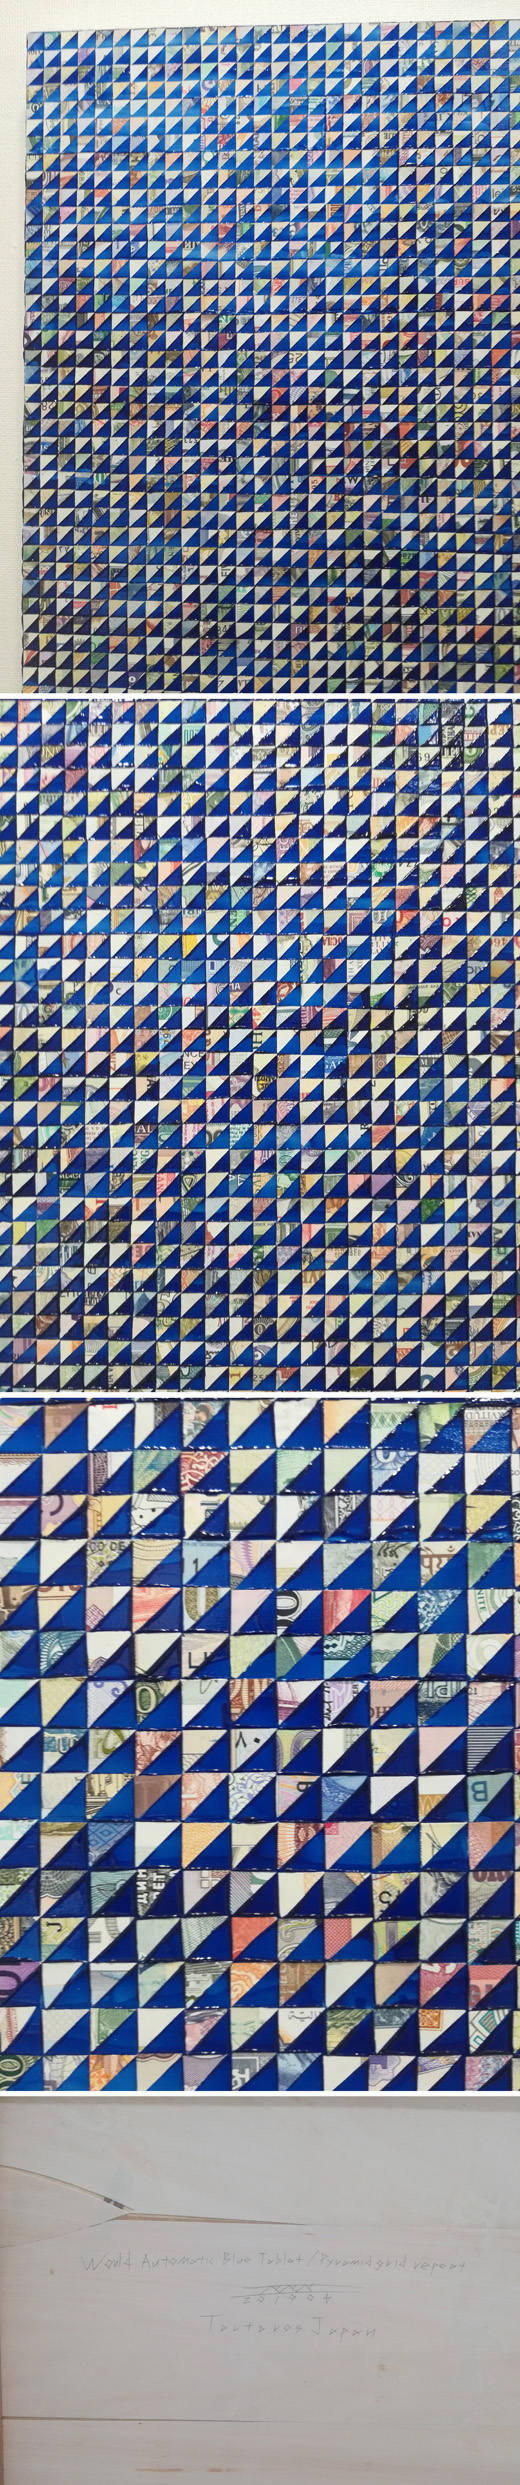 World Automatic Blue Tablet/Pyramid grid repeat